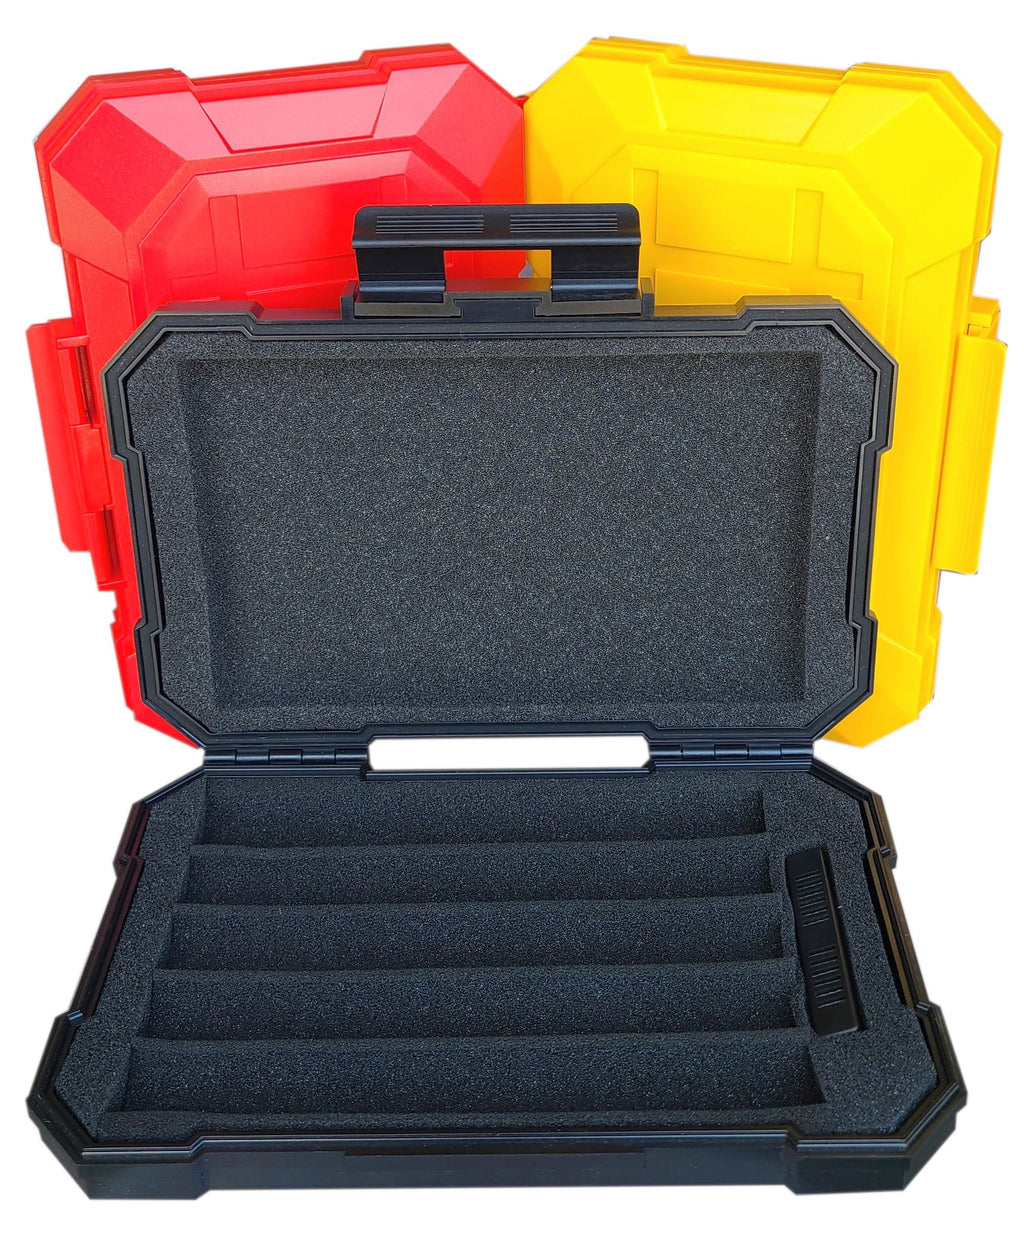 Volenx Travel Humidor 5CC. Click here to see Collection! - The Smokin' Cigar Inc. Volenx Humidors